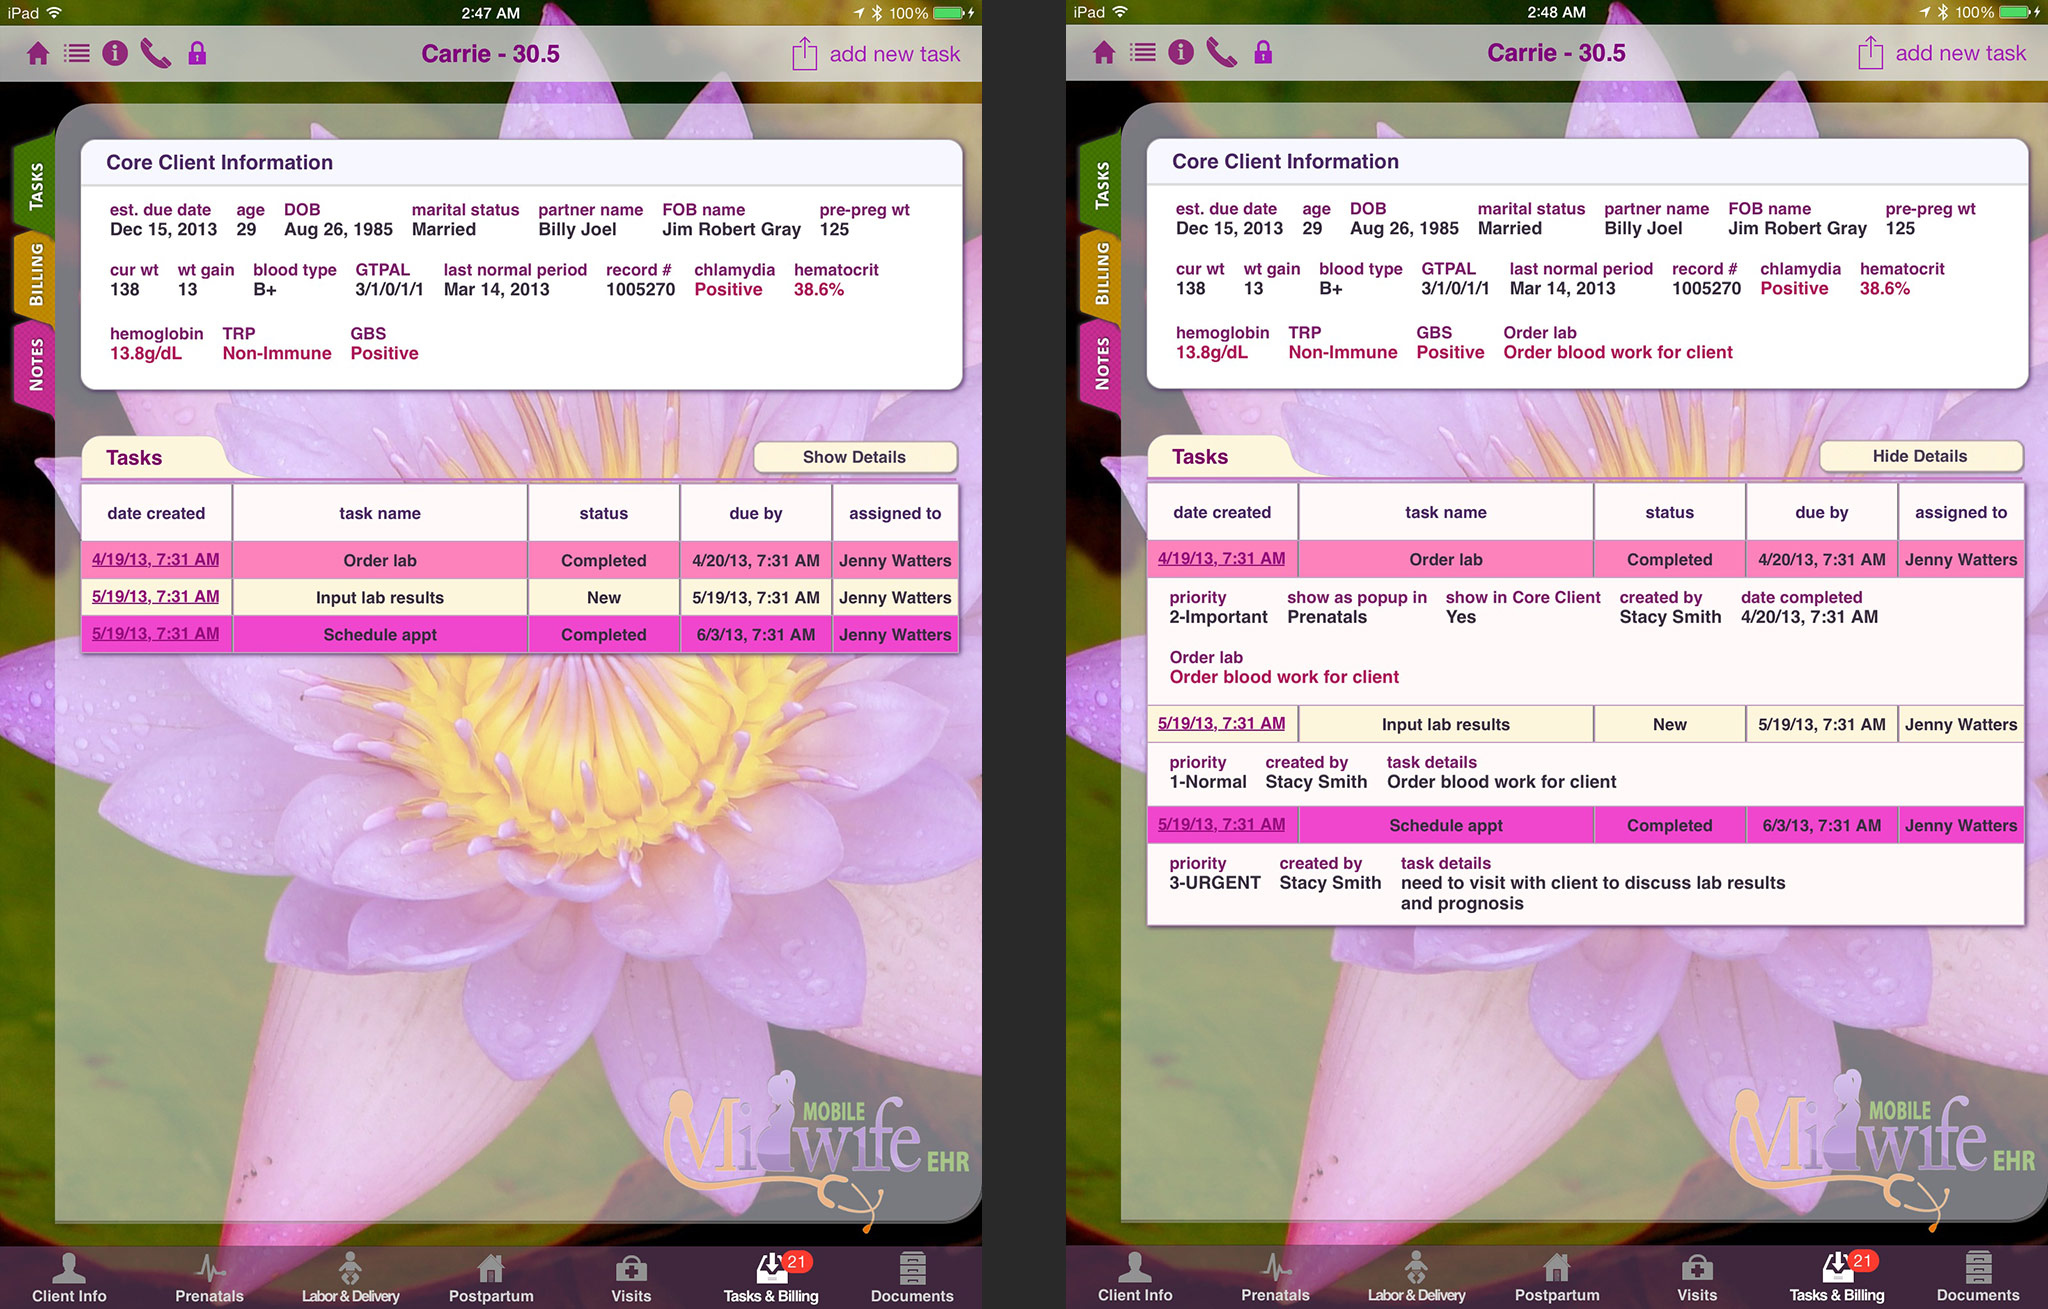 Overview Mobile Midwife Ehr App For The Ipad Electronic Charting